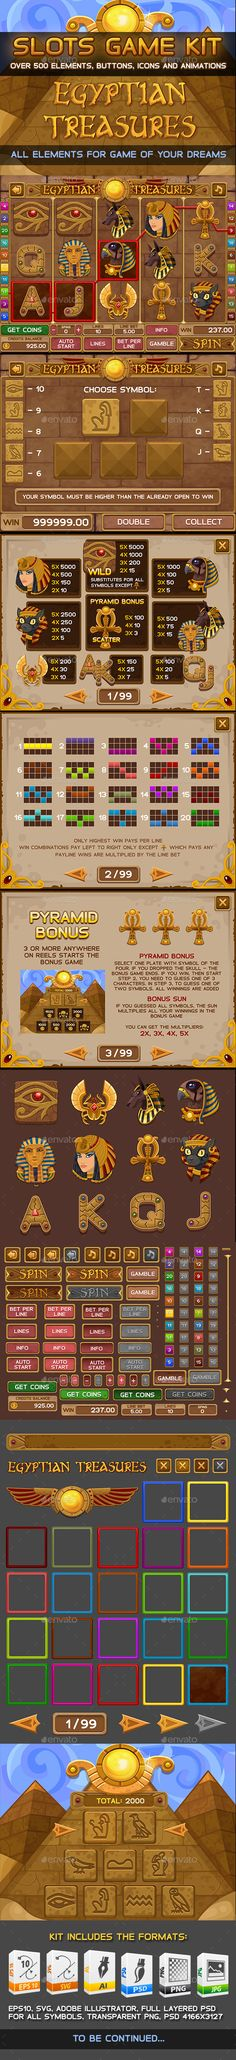 Egyptian treasures slots game — Photoshop PSD #sign #reel • Download ➝ https://graphicriver.net/item/egyptian-treasures-slots-game/11093987?ref=pxcr